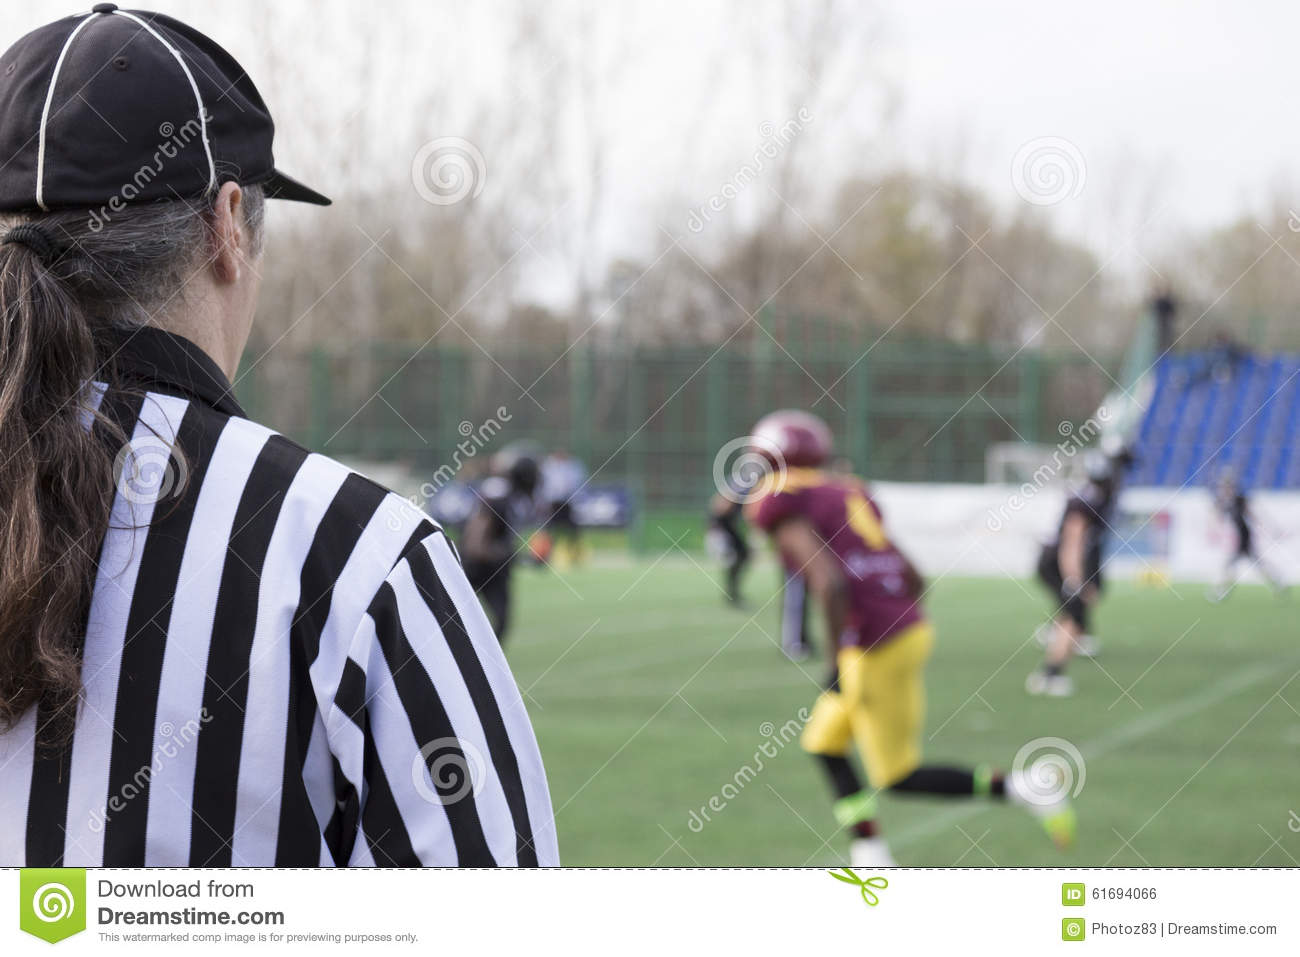 Referee football official signals a touchdown stock photo image - Football Referee Stock Photo Image 61694066